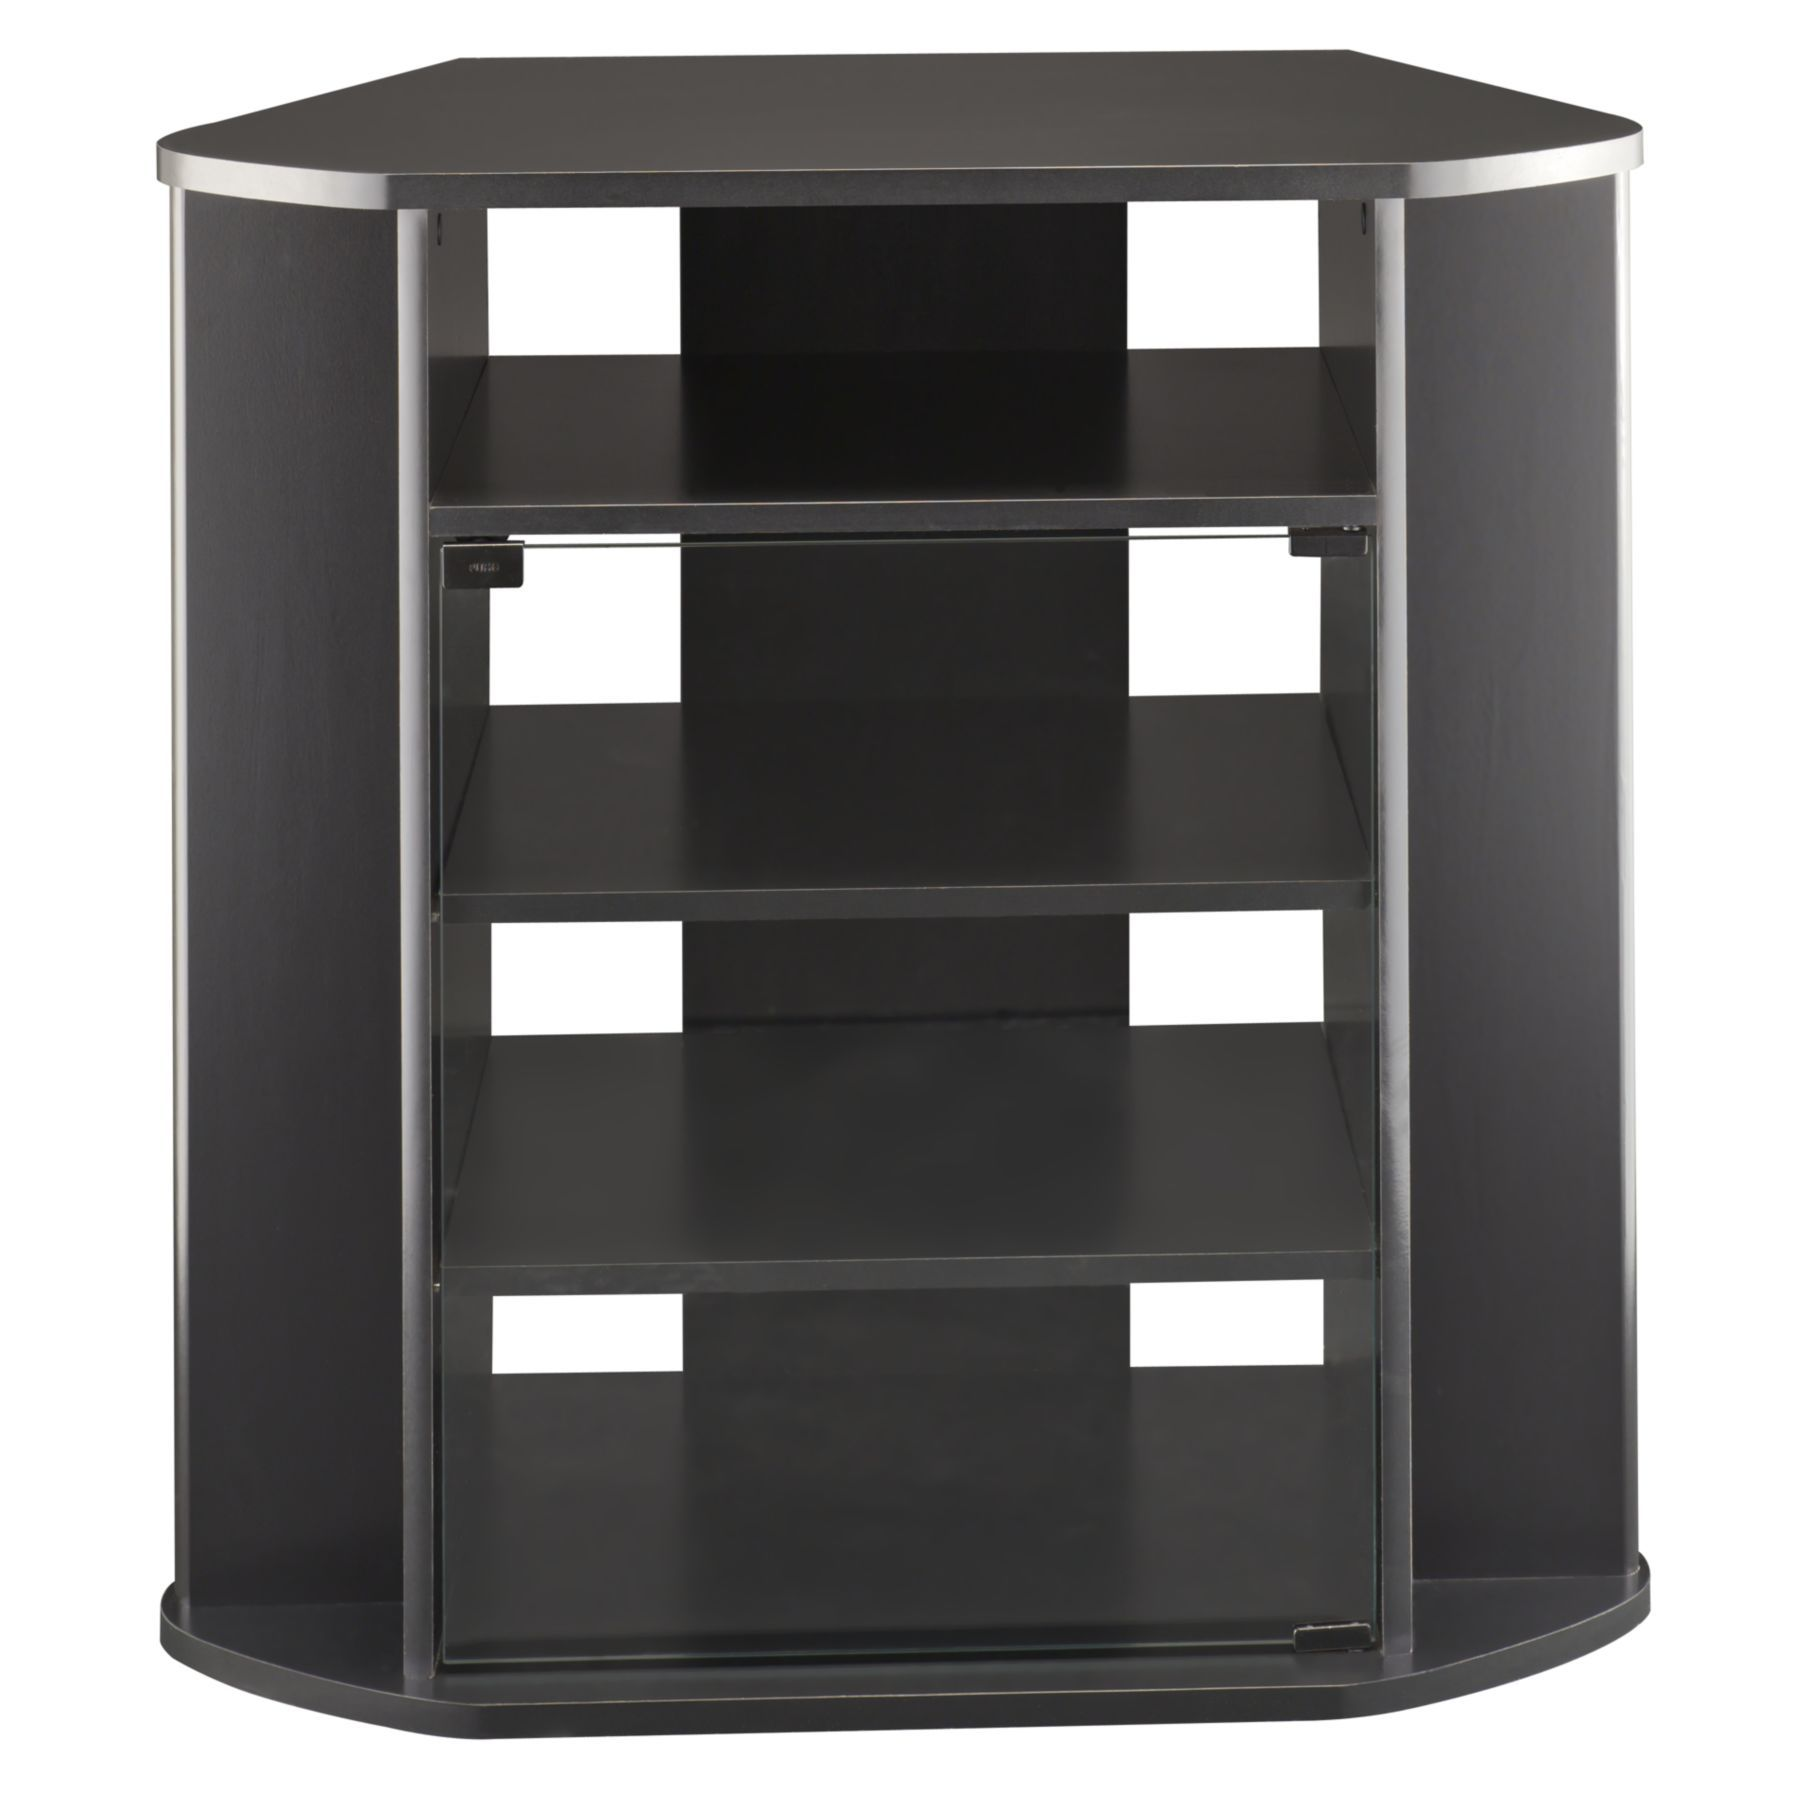 Bush Furniture Bush Myspace Visions Tall Corner TV Stand in Black